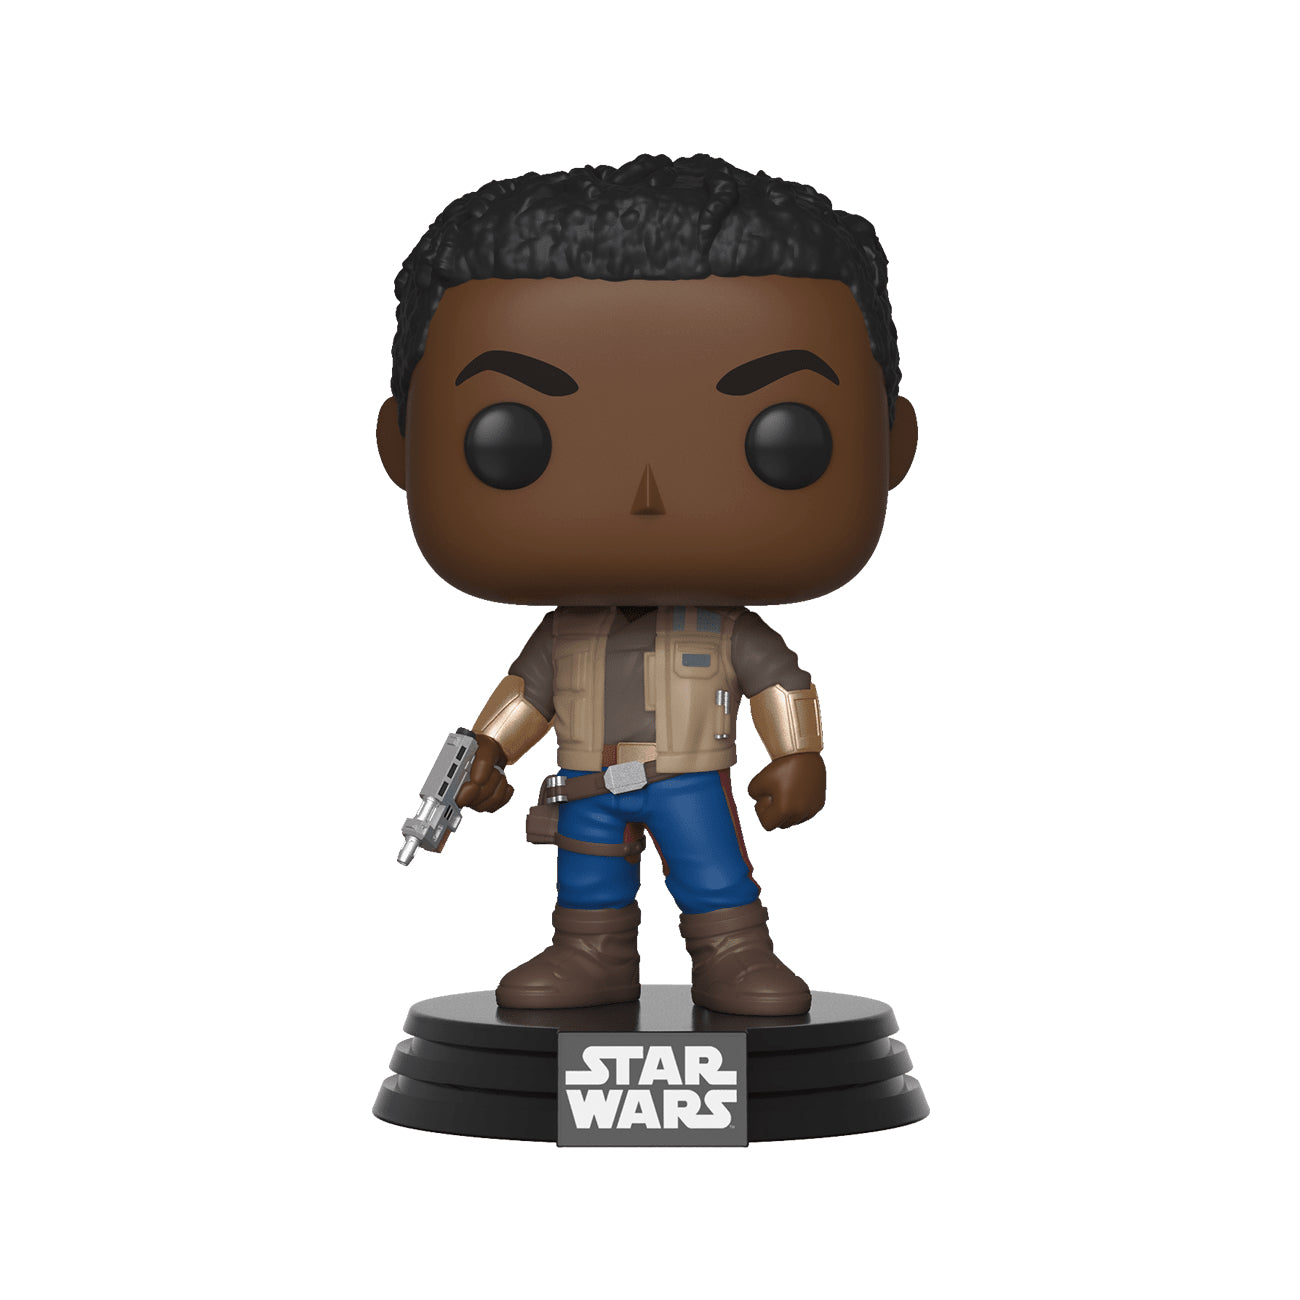 Star Wars The Rise of Skywalker Finn